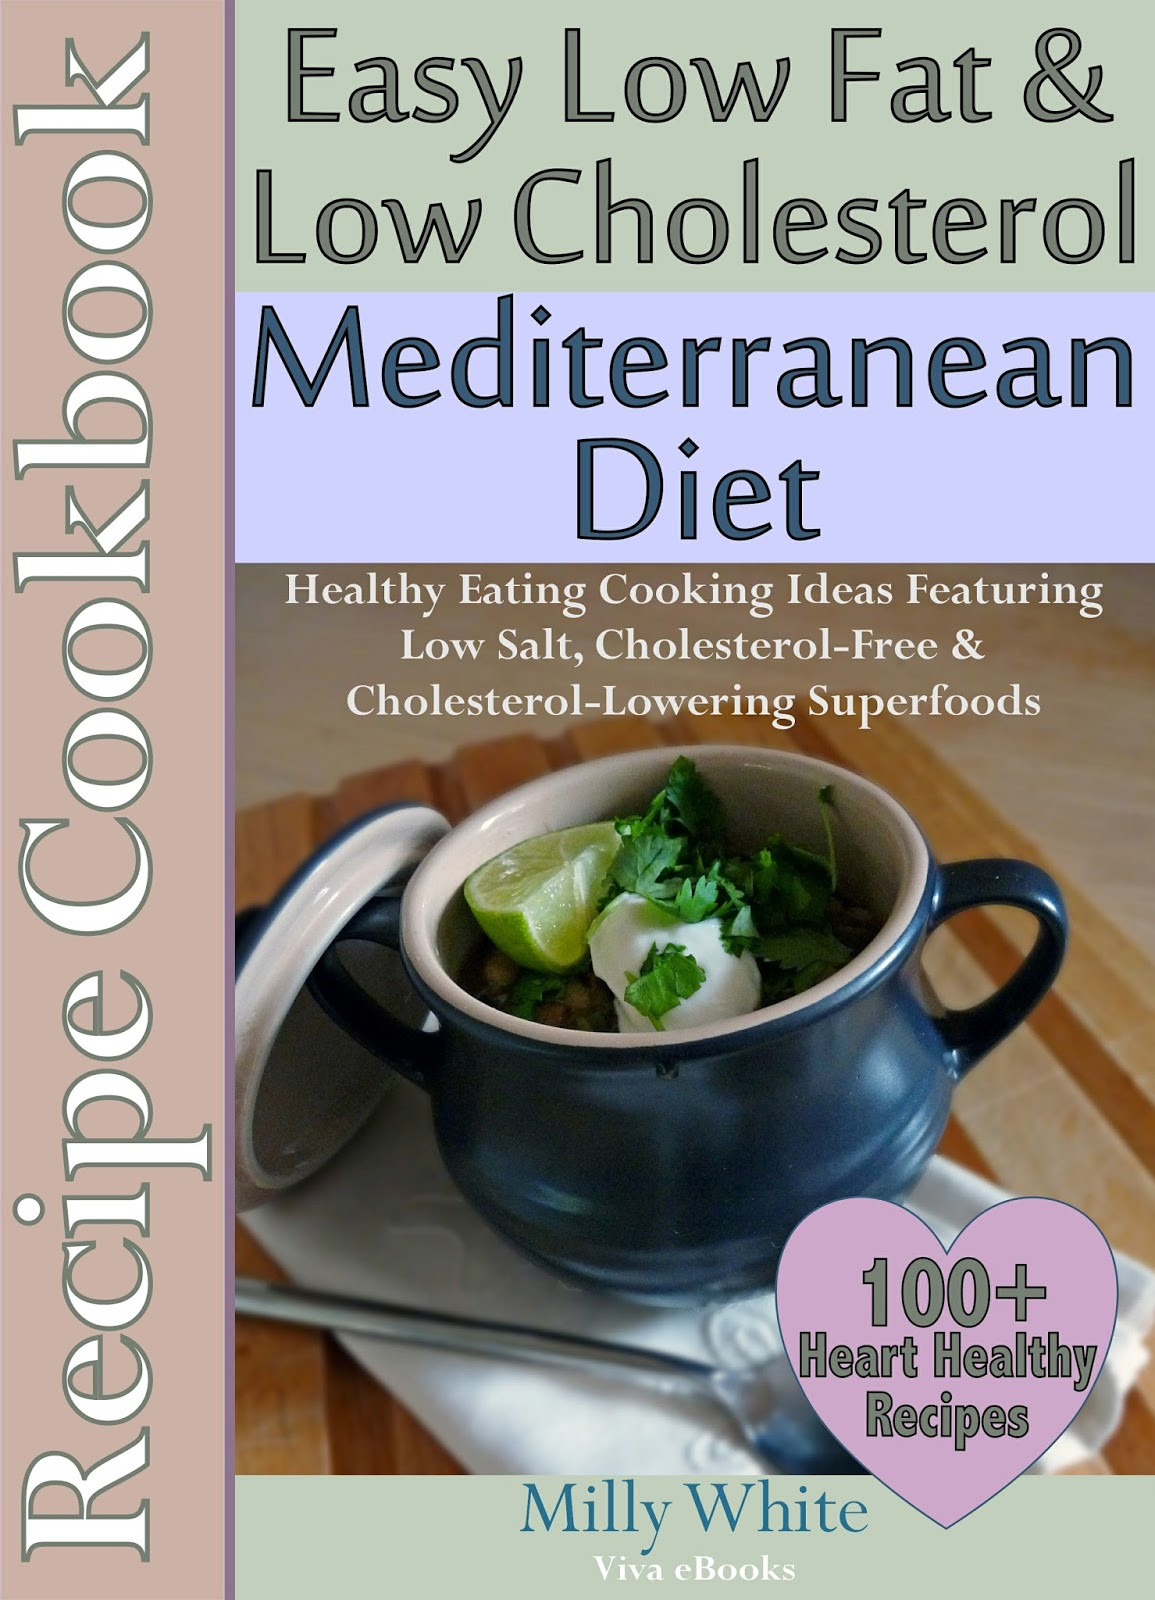 Low Cholesterol Diet Recipes  Dips Delectus Cholesterol The Silent Killer for